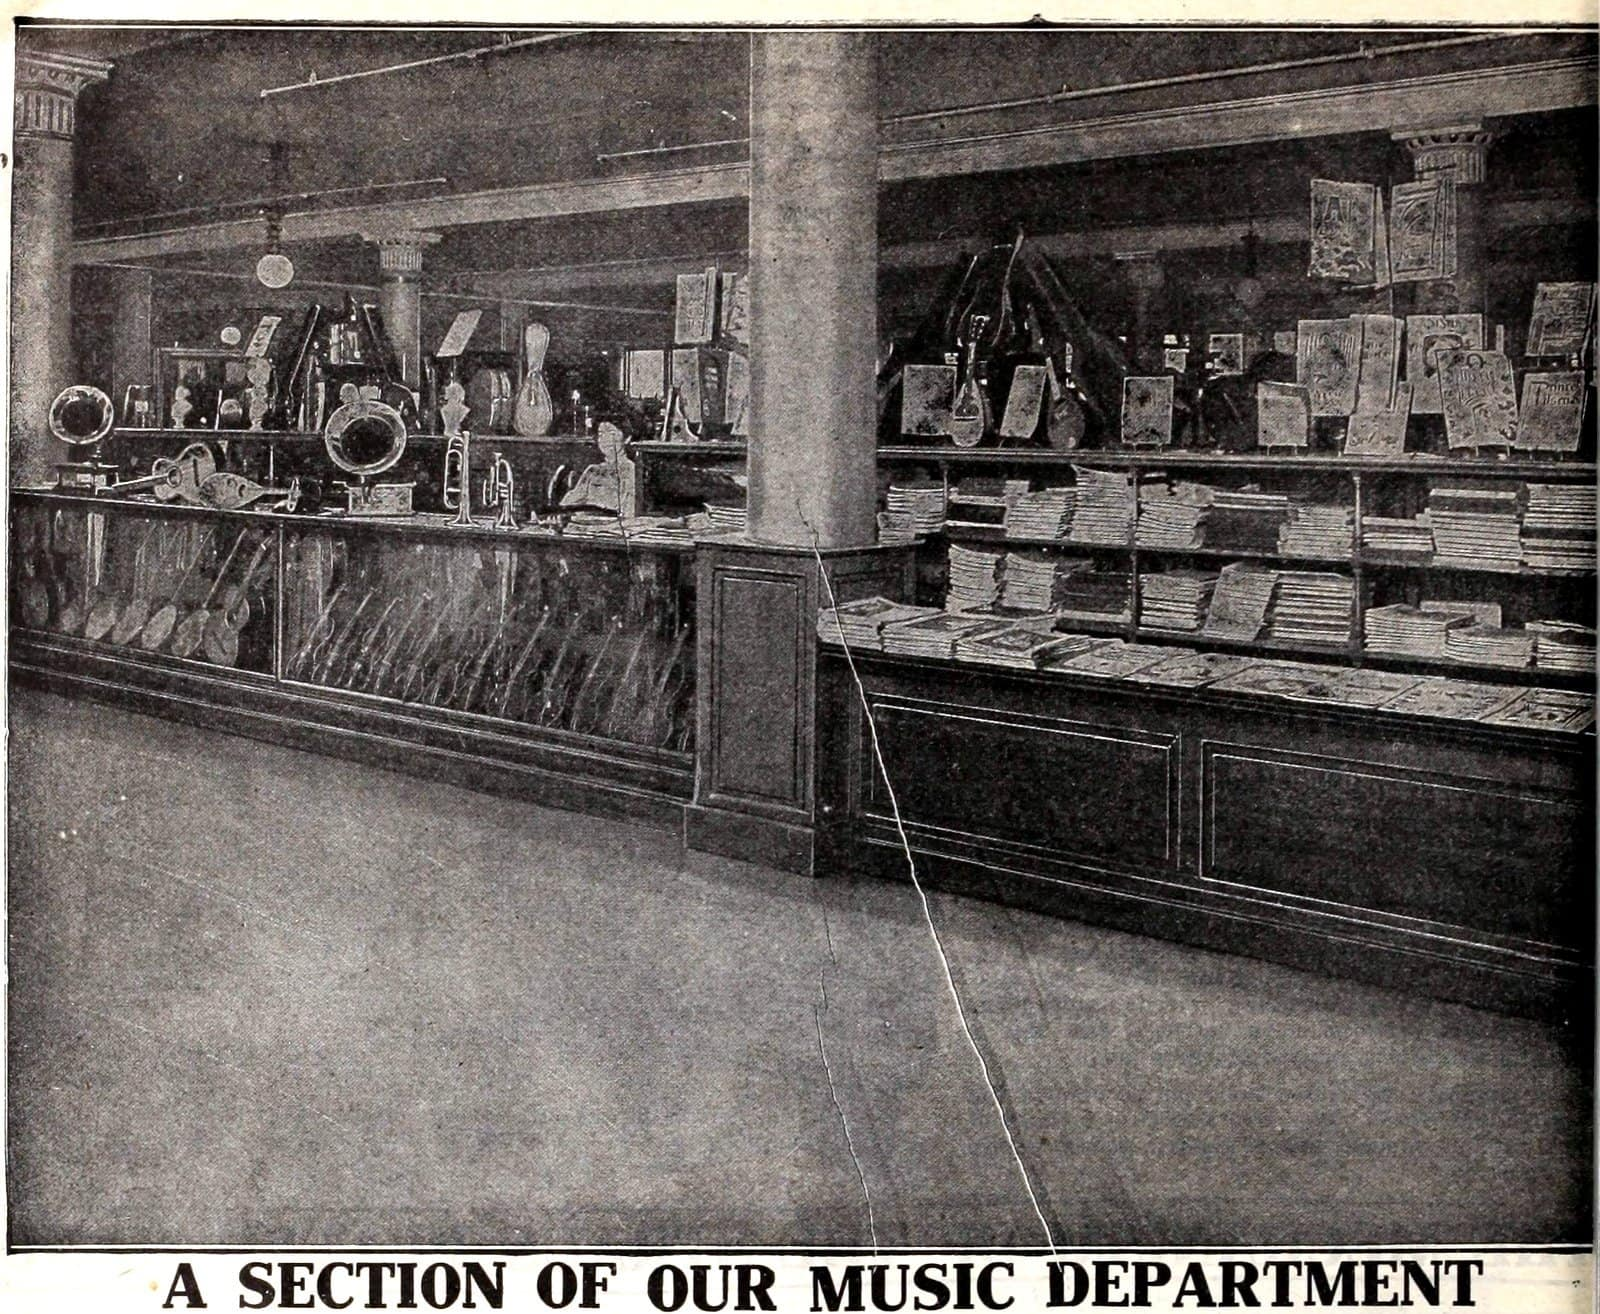 Music department at the vintage Macy's store in NYC (1900s)